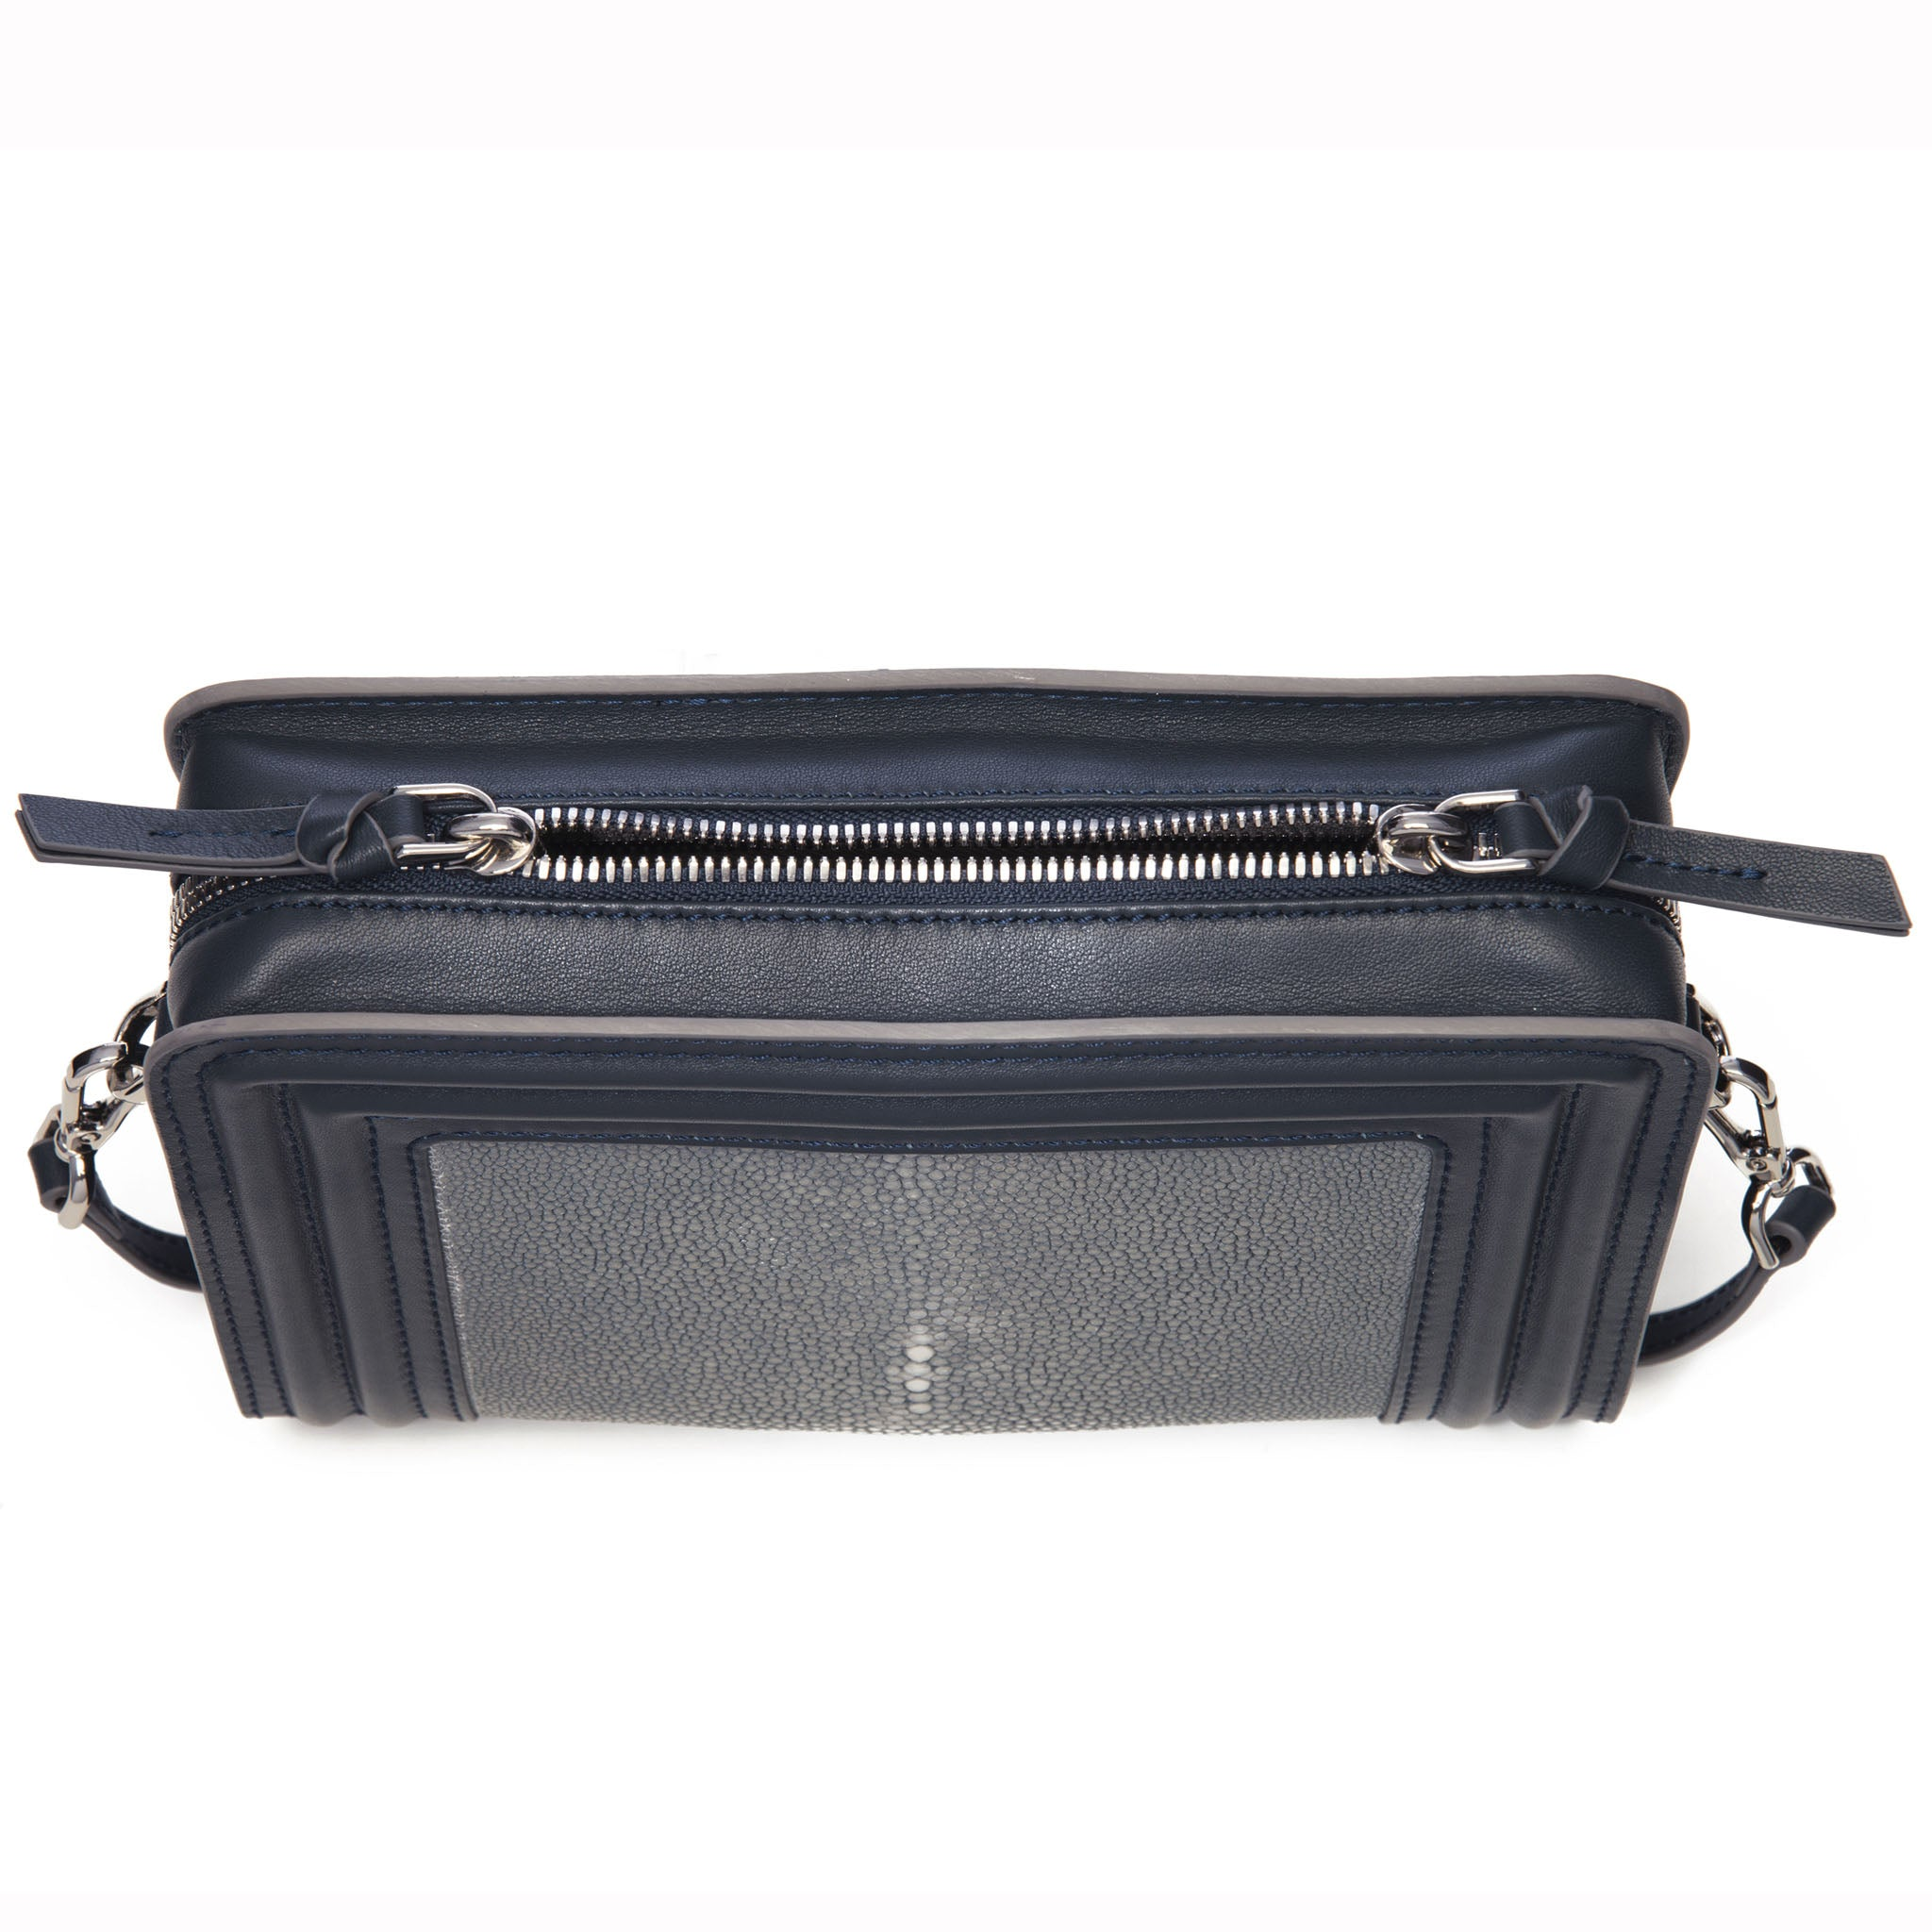 Gray Corded Leather Frames Gray Stingray Double Zipper Top Cross Body Bag Top View Nora - Vivo Direct